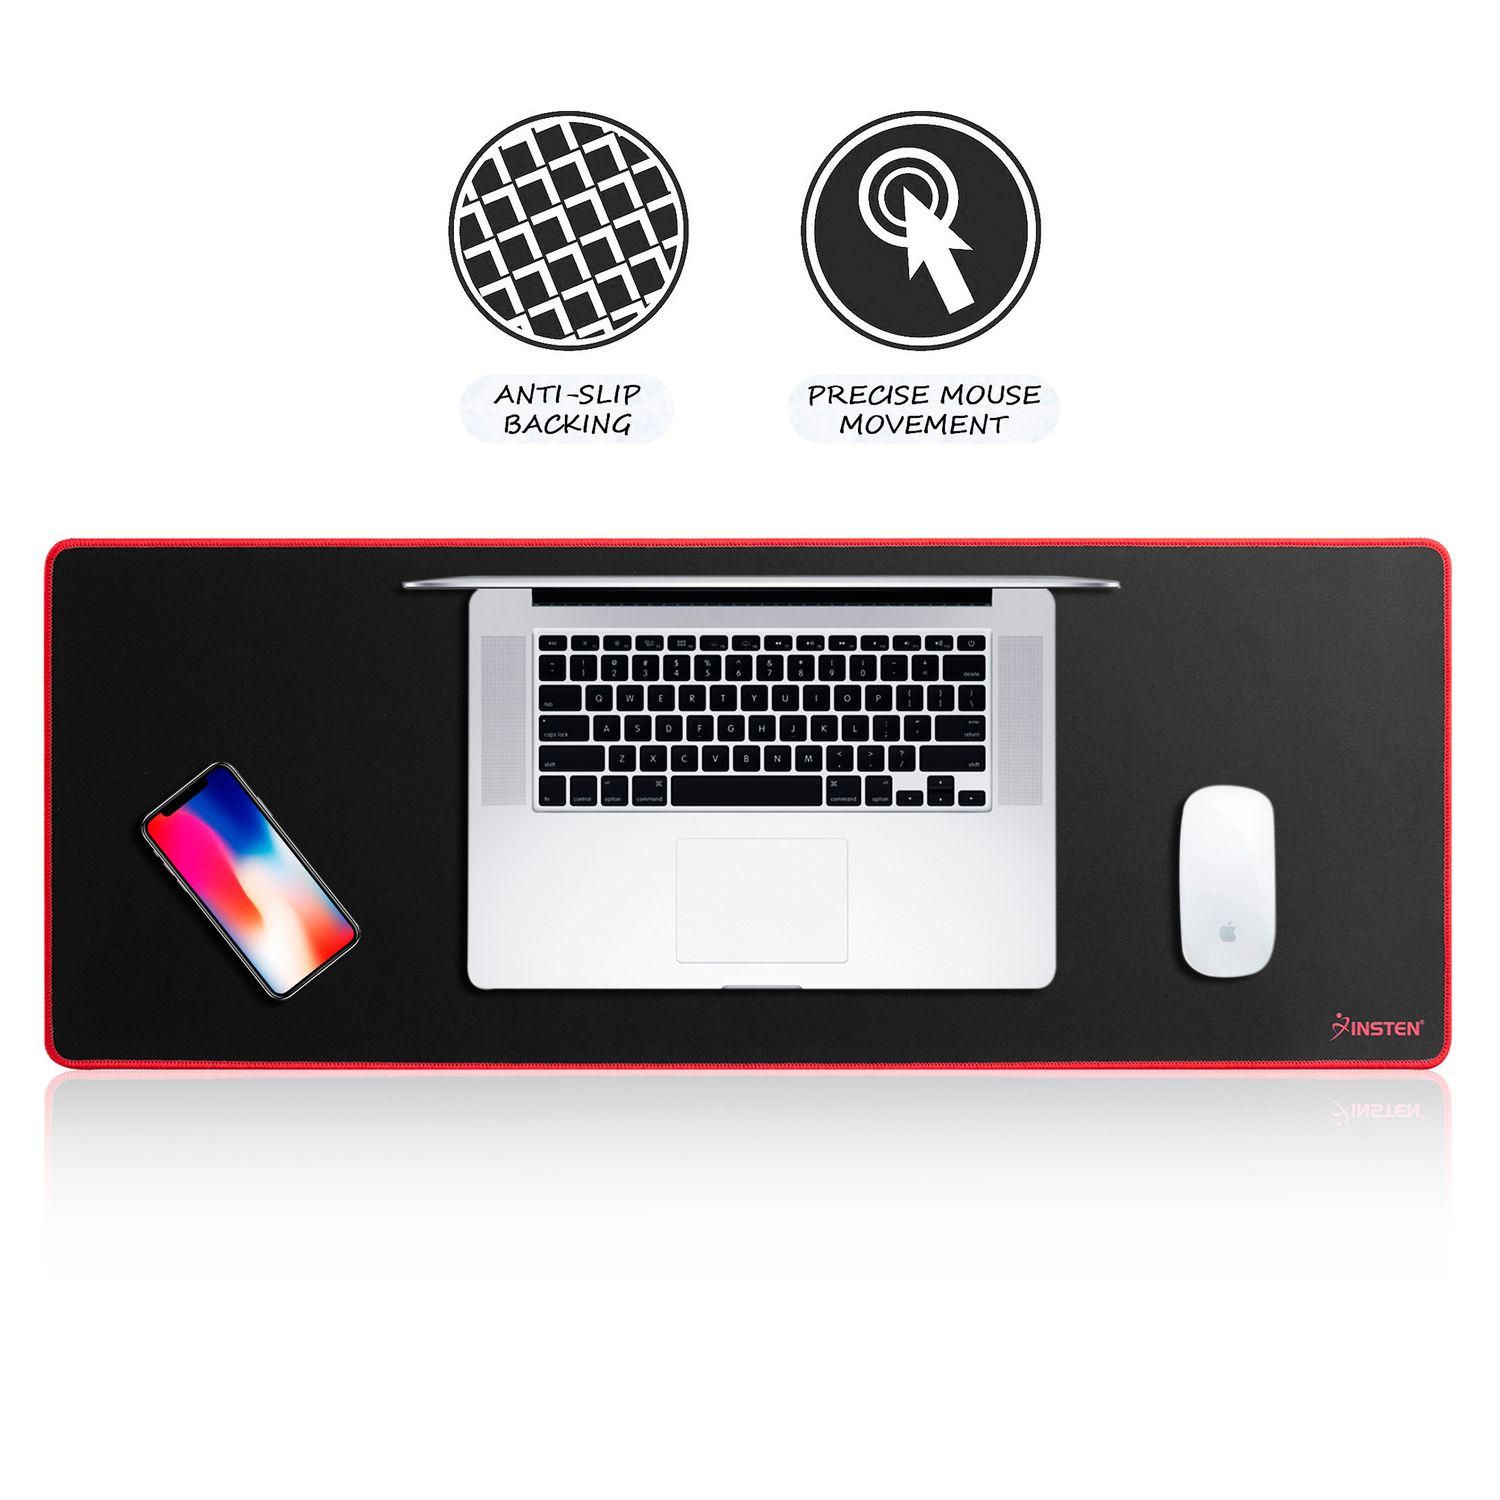 "Insten Extended Mouse Pad Long Mat (Size: 31.5"" x 12"") with Low Friction Surface & Non-Slip Bace for Desktop Mouse Keyboard Professional E-Sports Game Universal Black/Red"